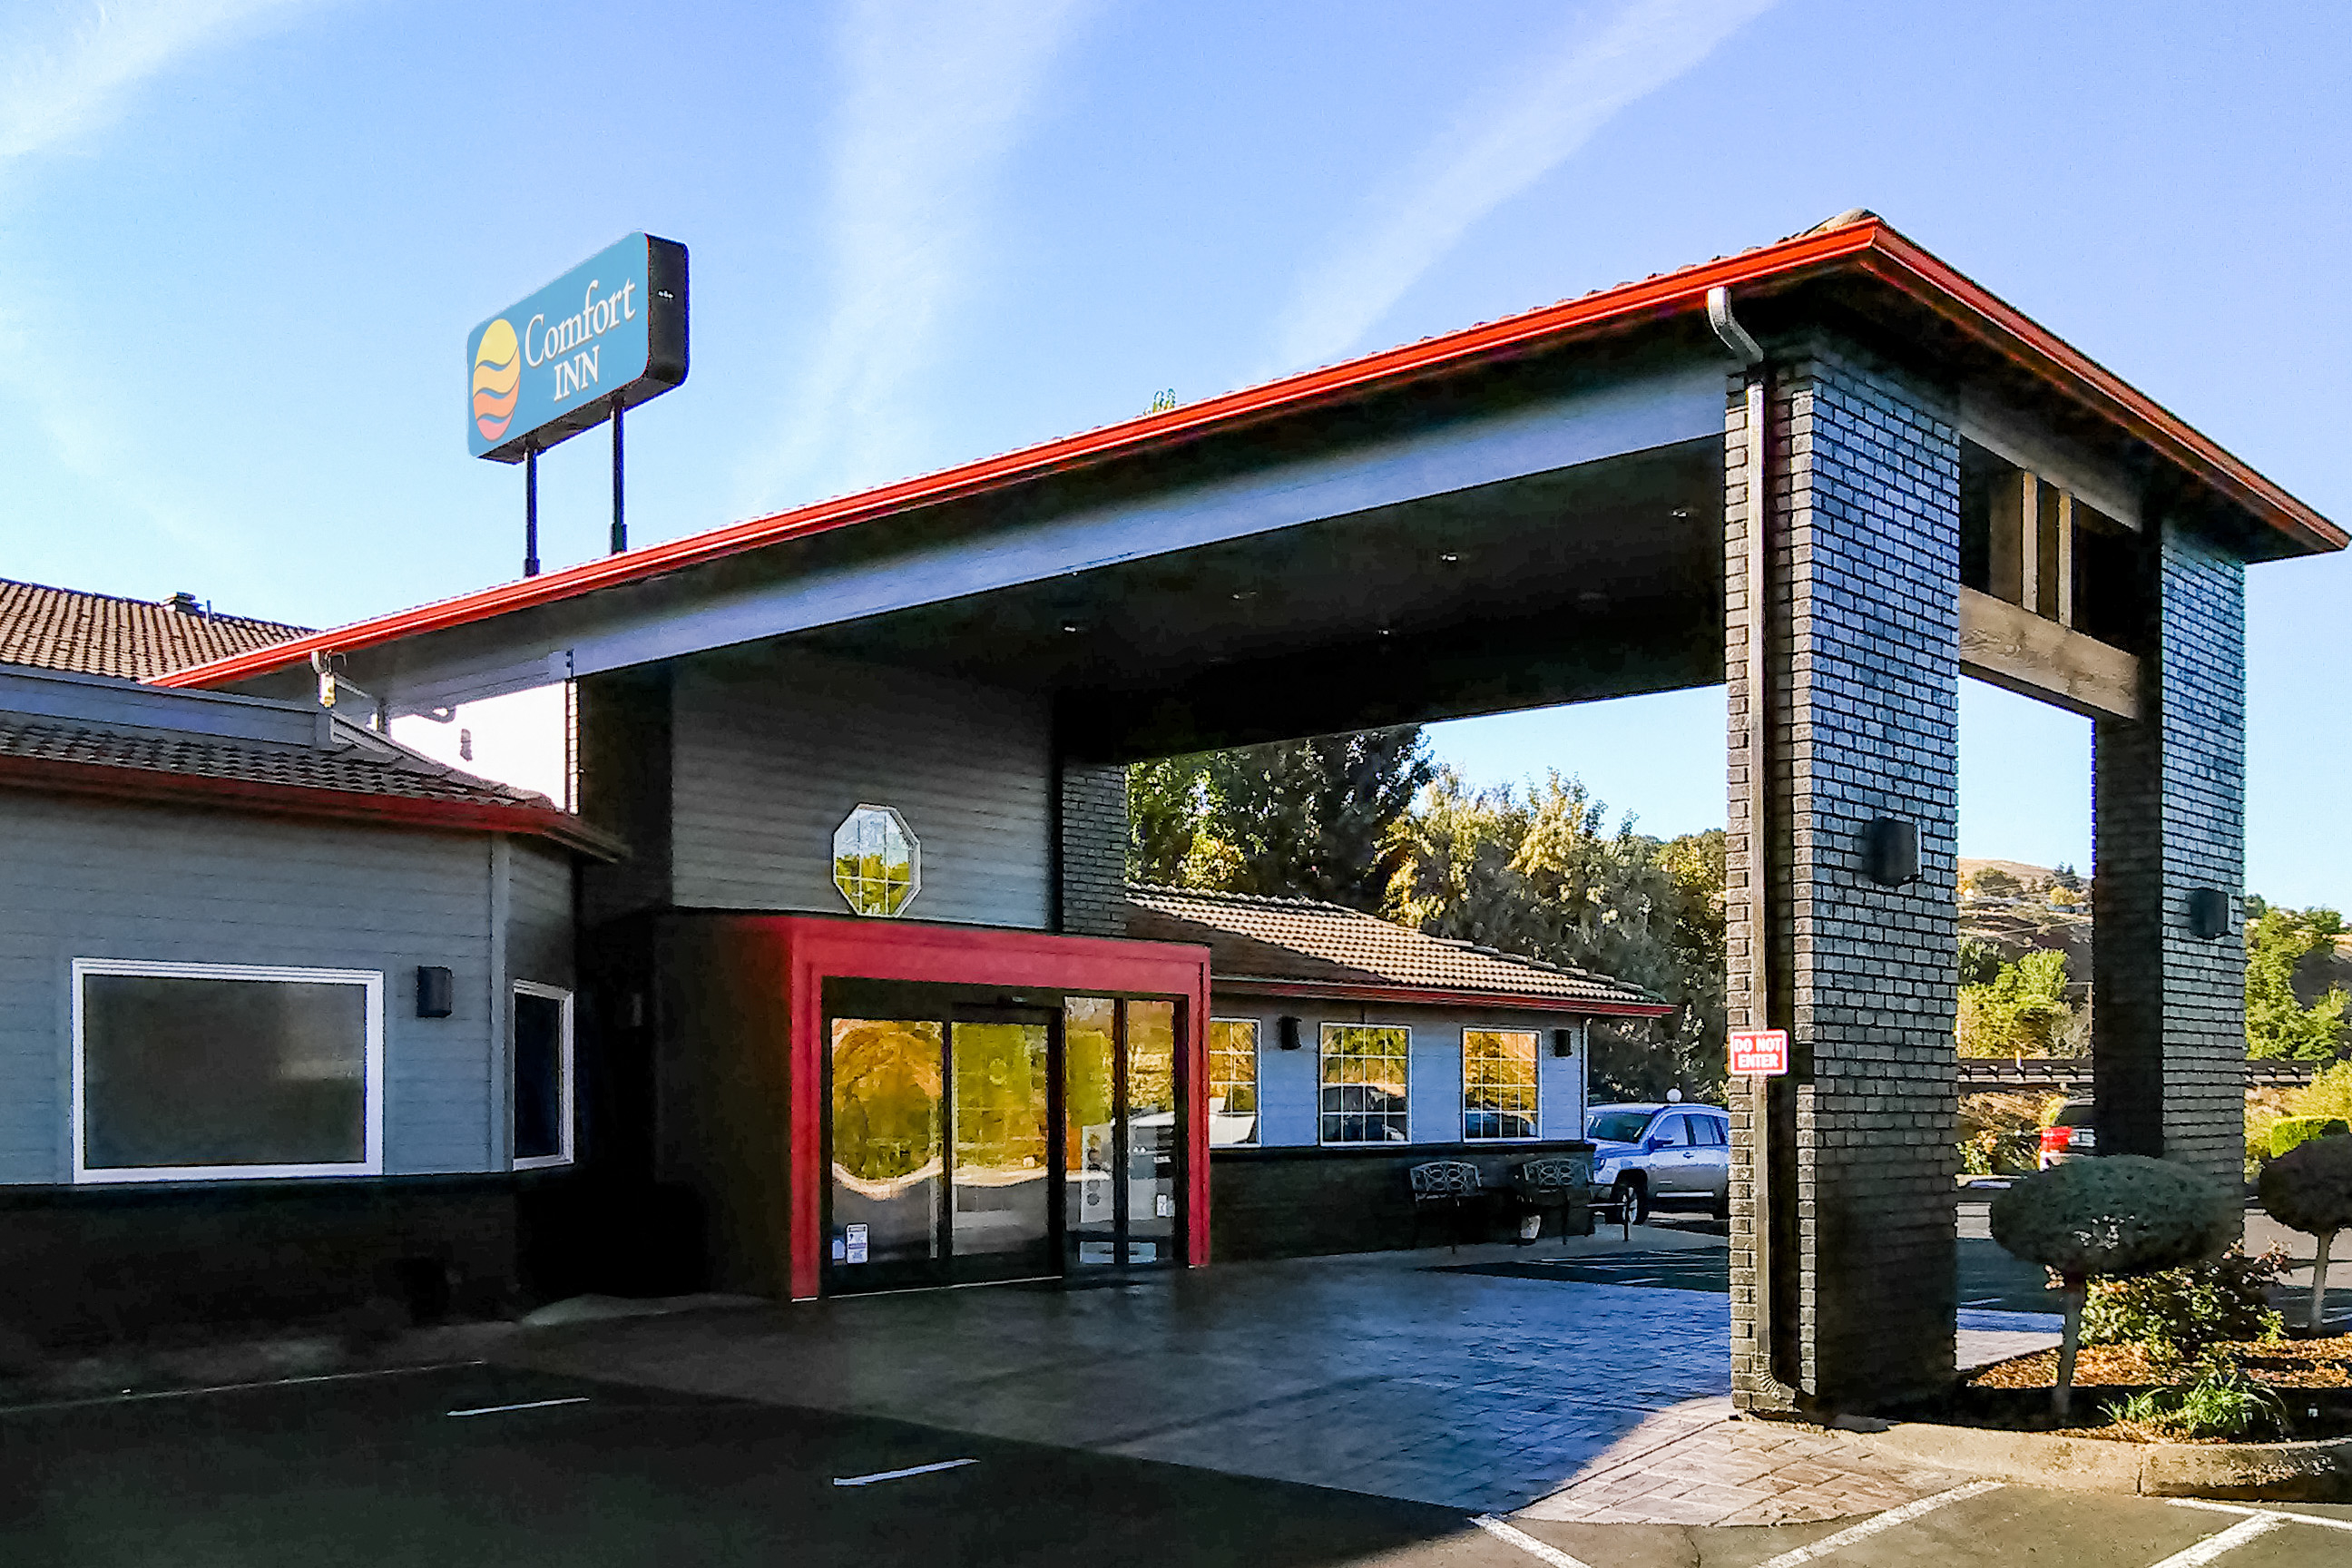 Comfort Inn Columbia Gorge, The Dalles OR